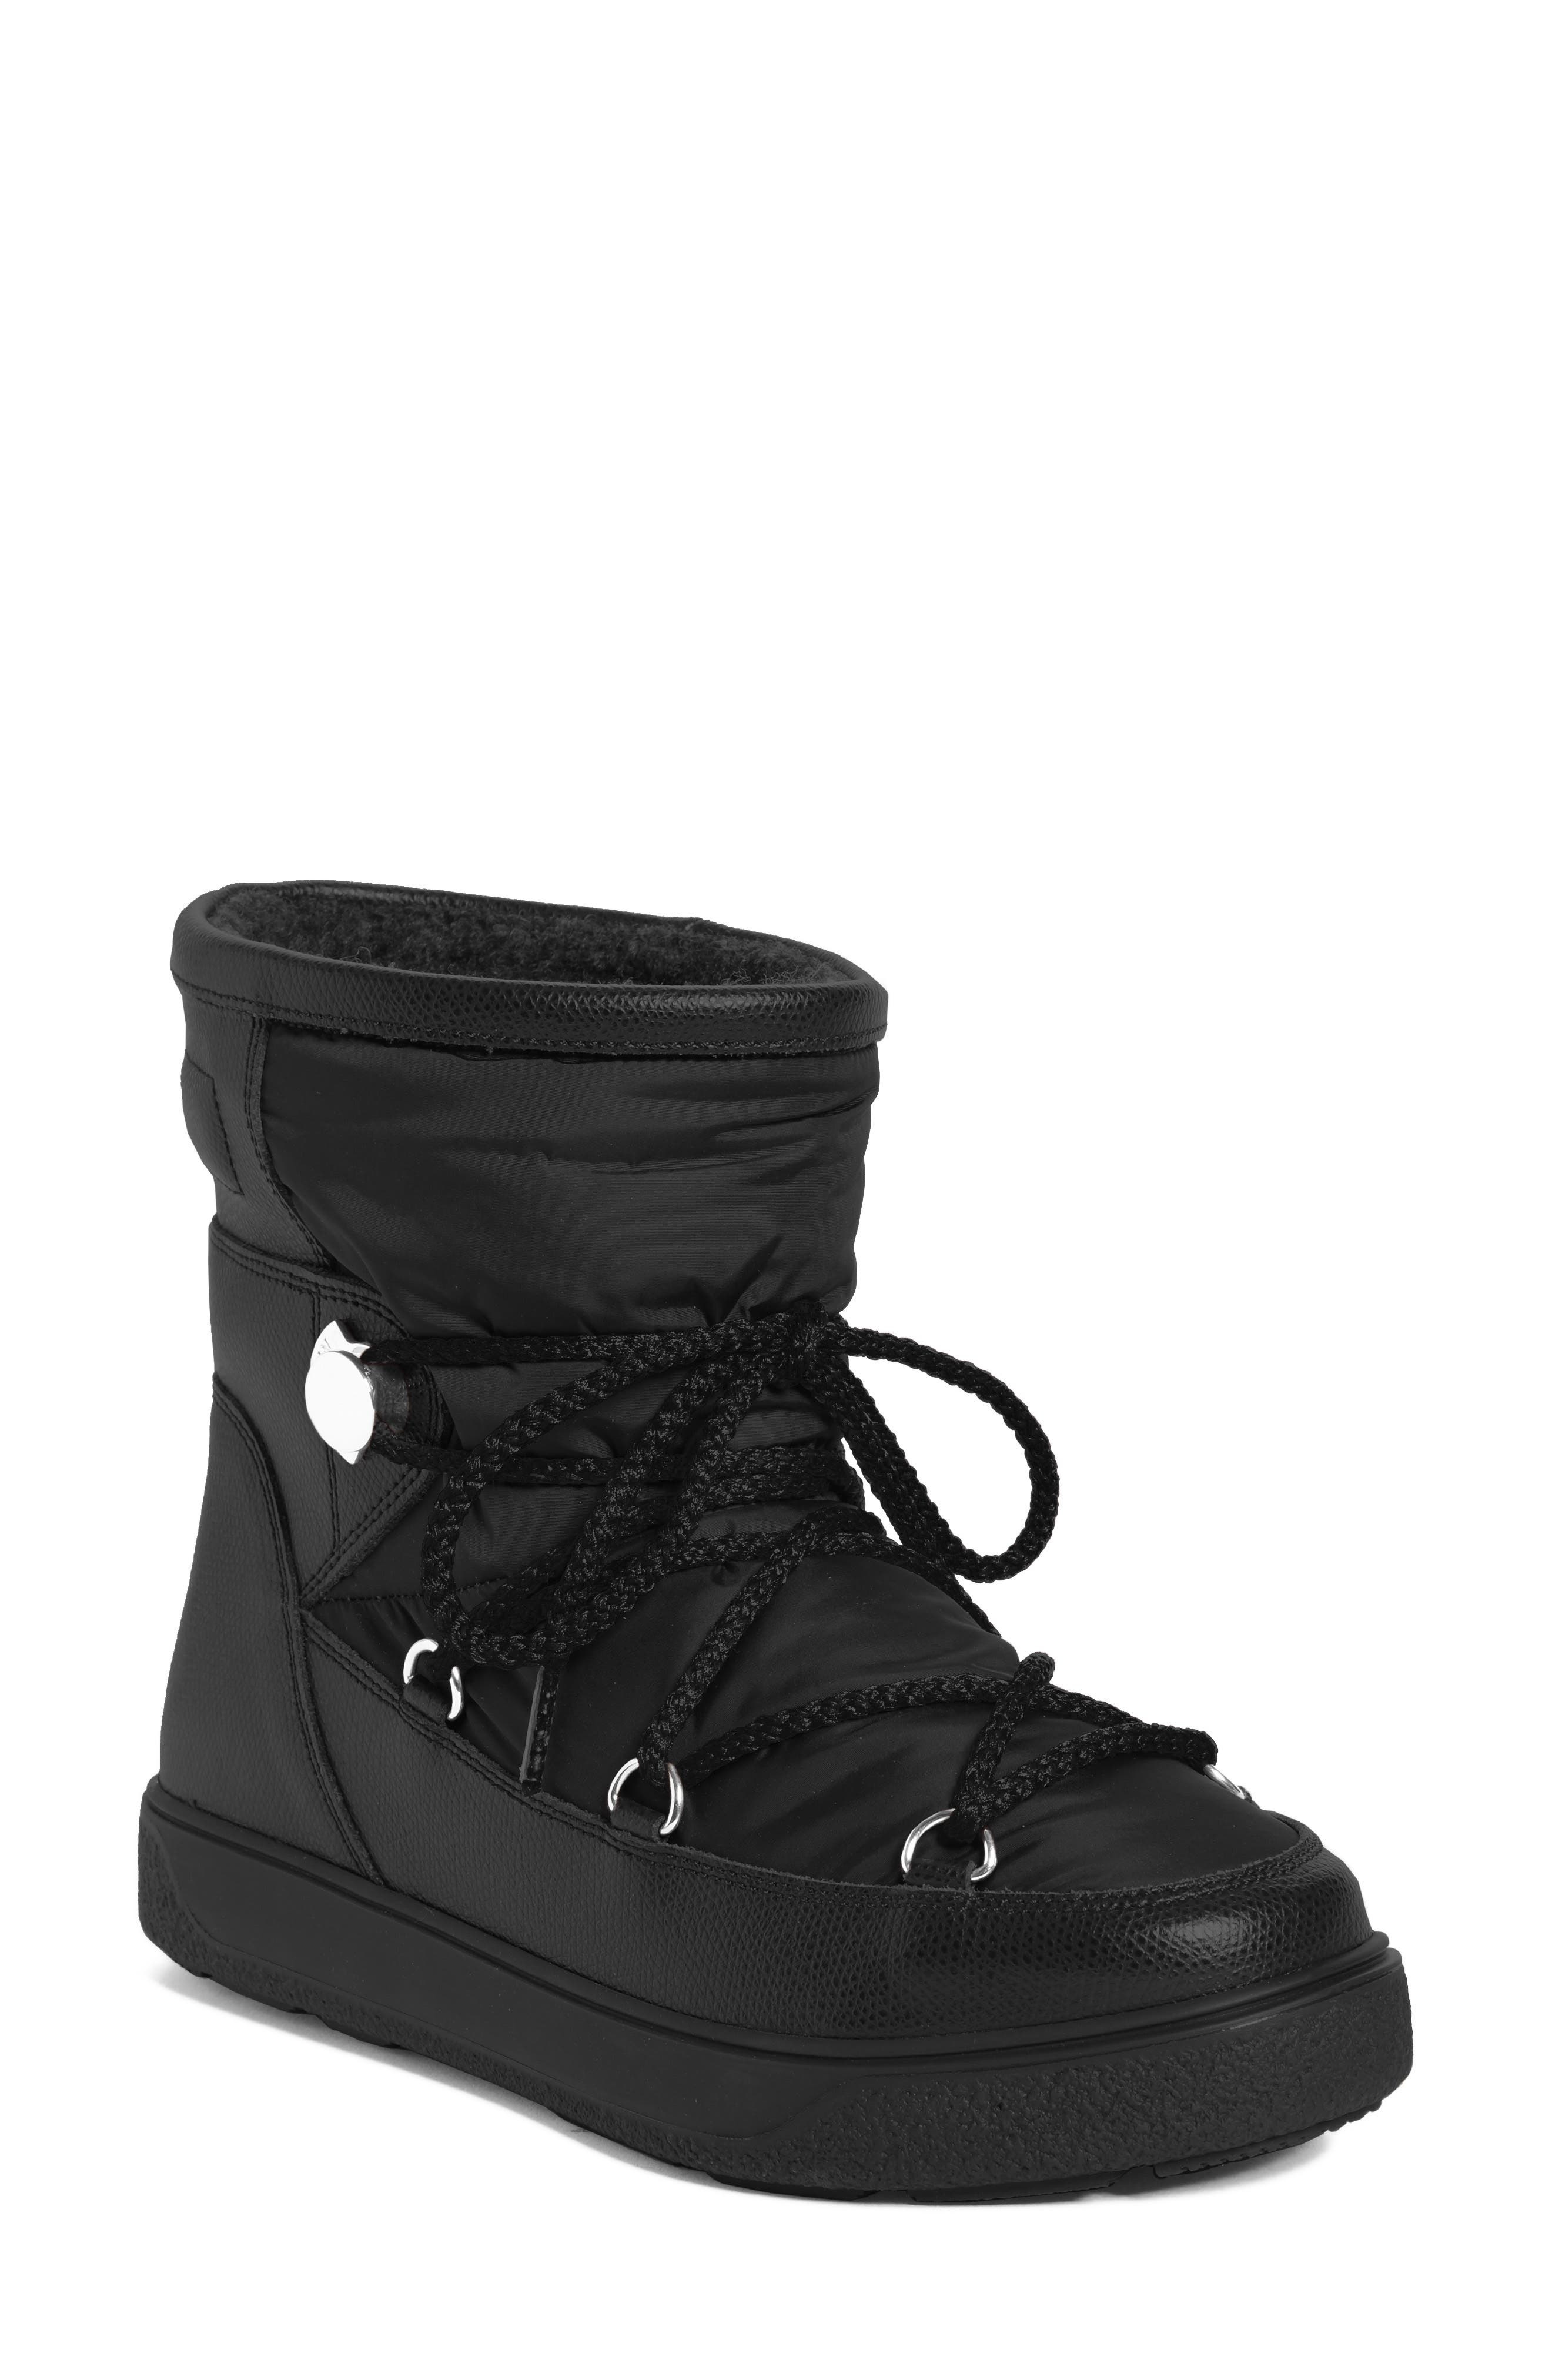 New Fanny Stivale Short Moon Boots,                         Main,                         color, Black